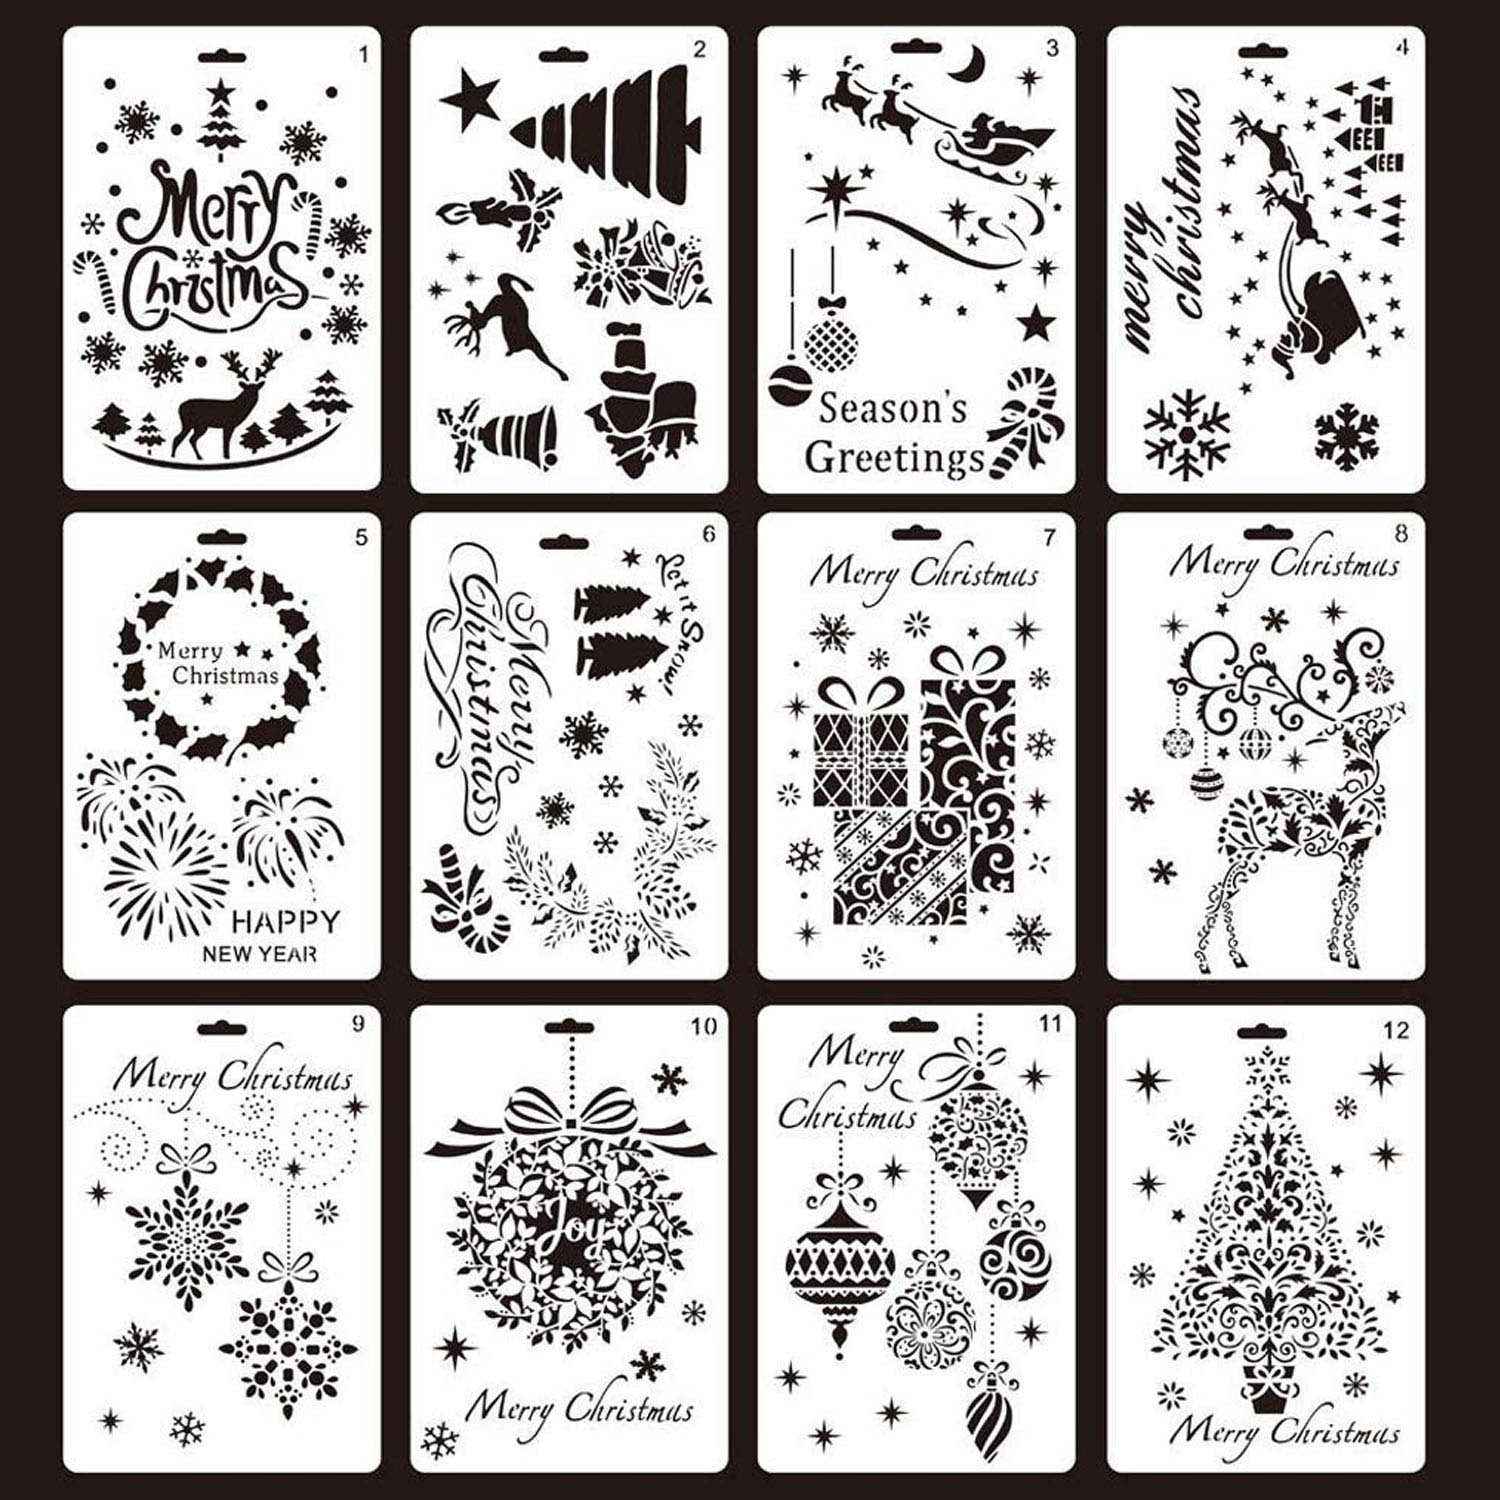 12PCS Assorted Style Merry Christmas Painting Drawing Stencils Templates for Pigment School Project Scrapbooking DIY Craft Album